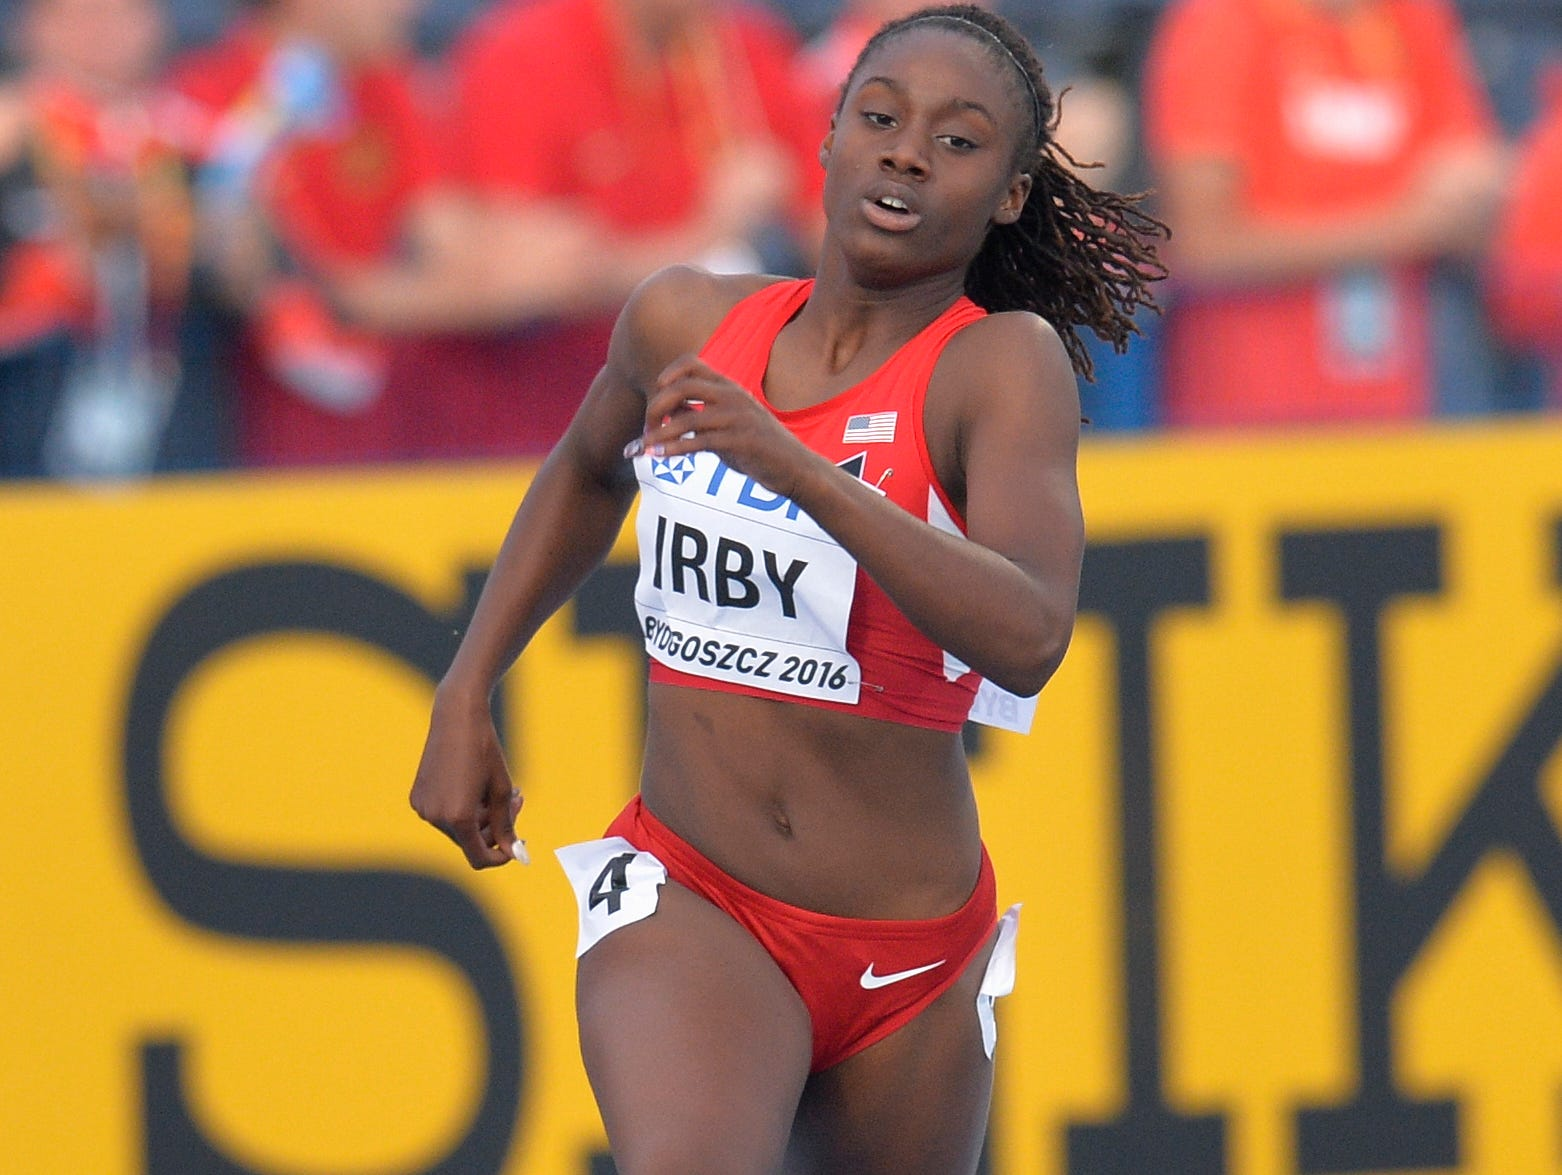 BYDGOSZCZ, POLAND - JULY 20: Lynna Irby from USA competes in Women's 400 metres semi-final during the IAAF World U20 Championships at the Zawisza Stadium on July 20, 2016 in Bydgoszcz, Poland.